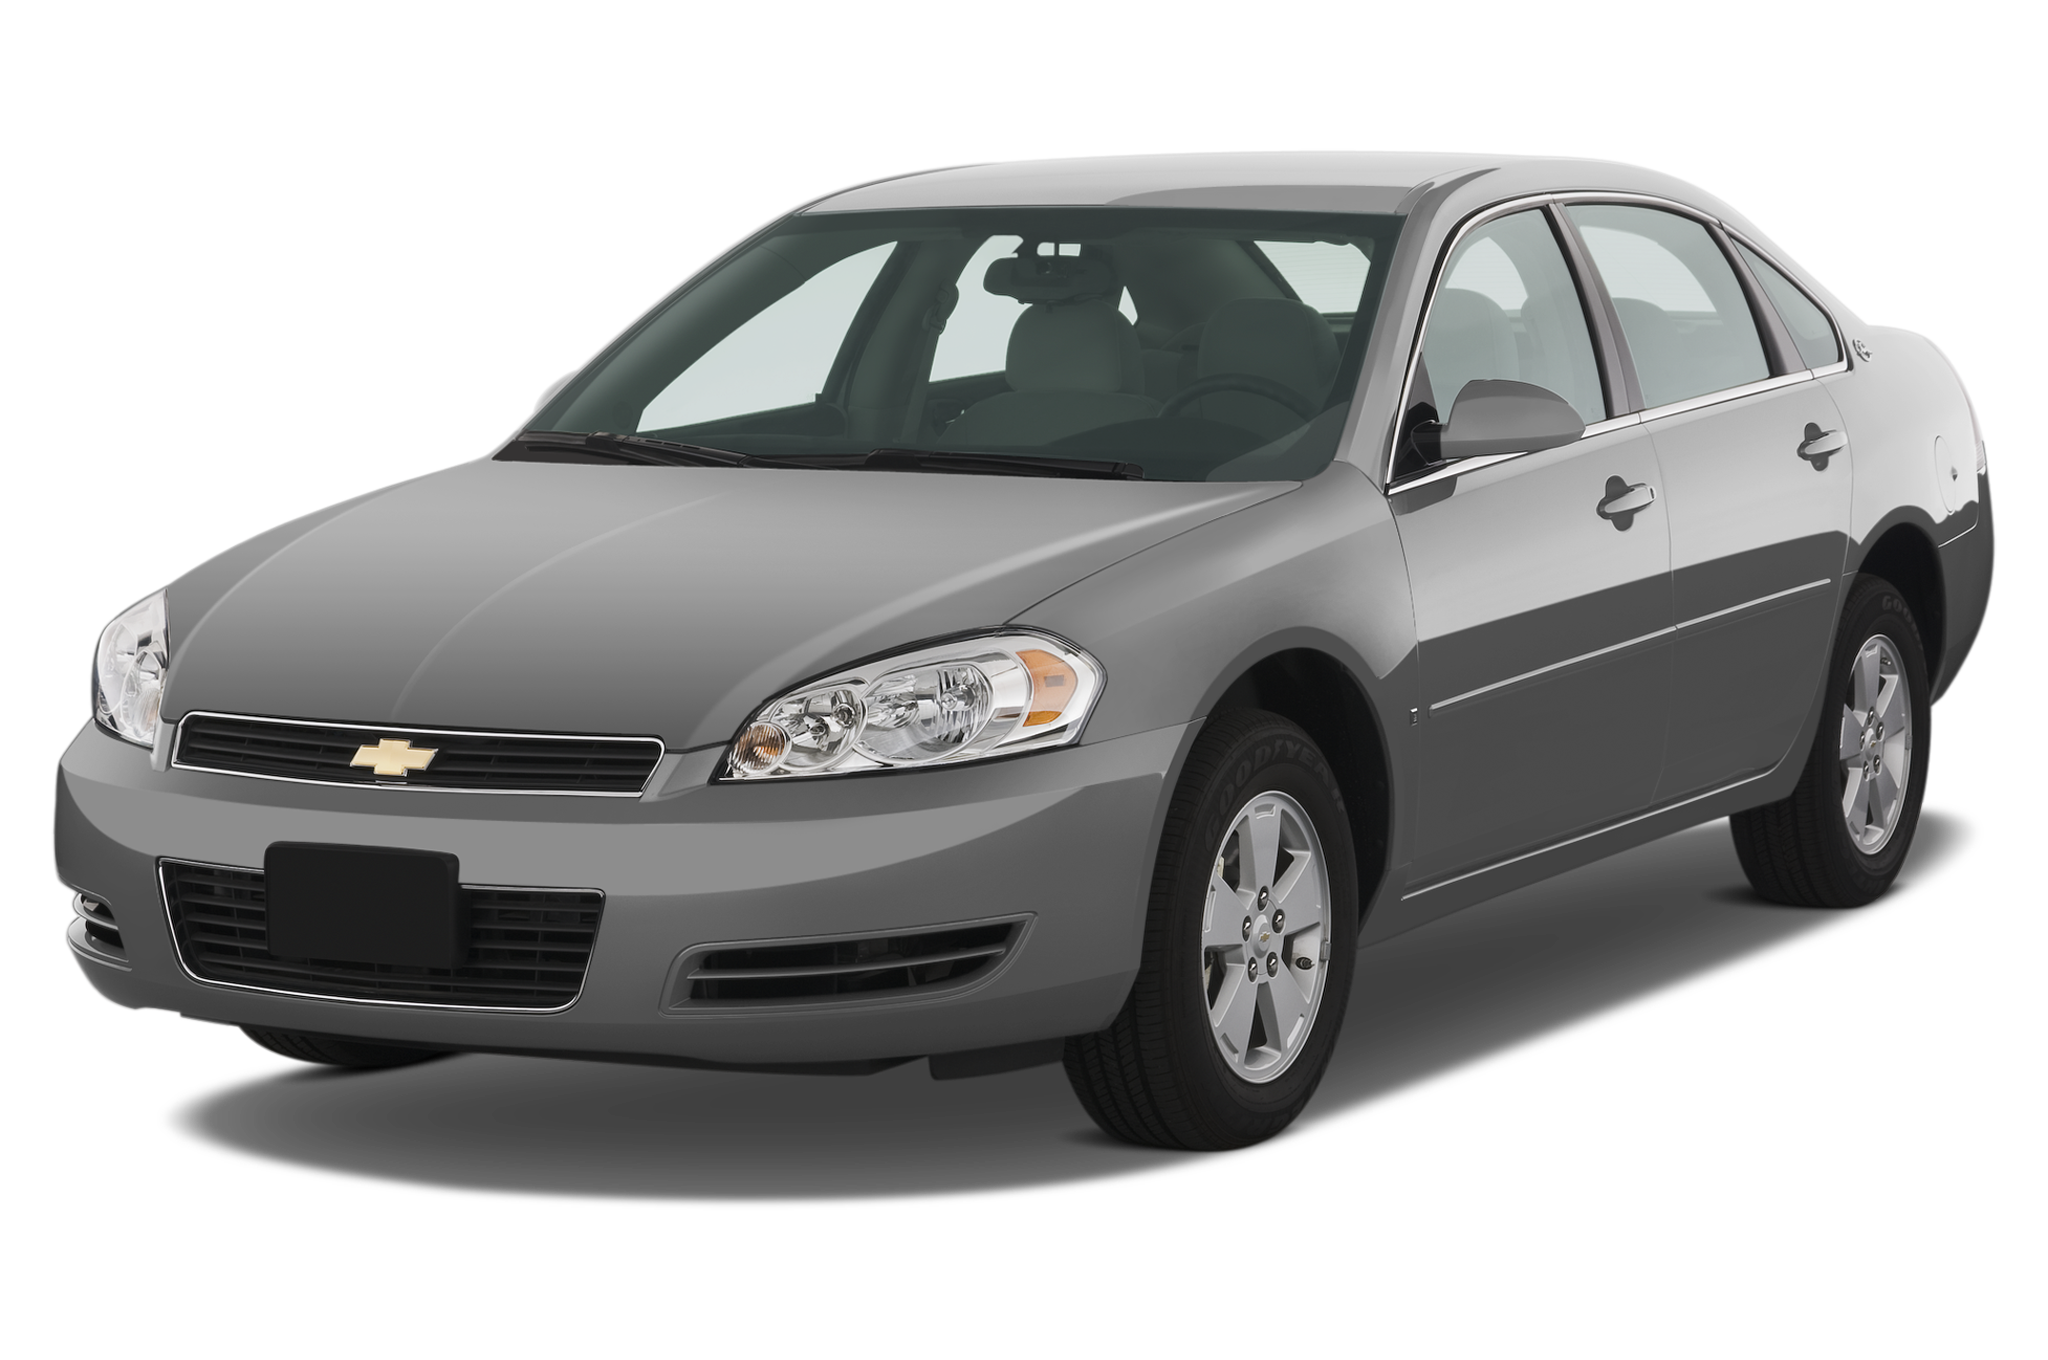 2013 chevrolet impala reviews and rating motor trend fair market price fandeluxe Gallery